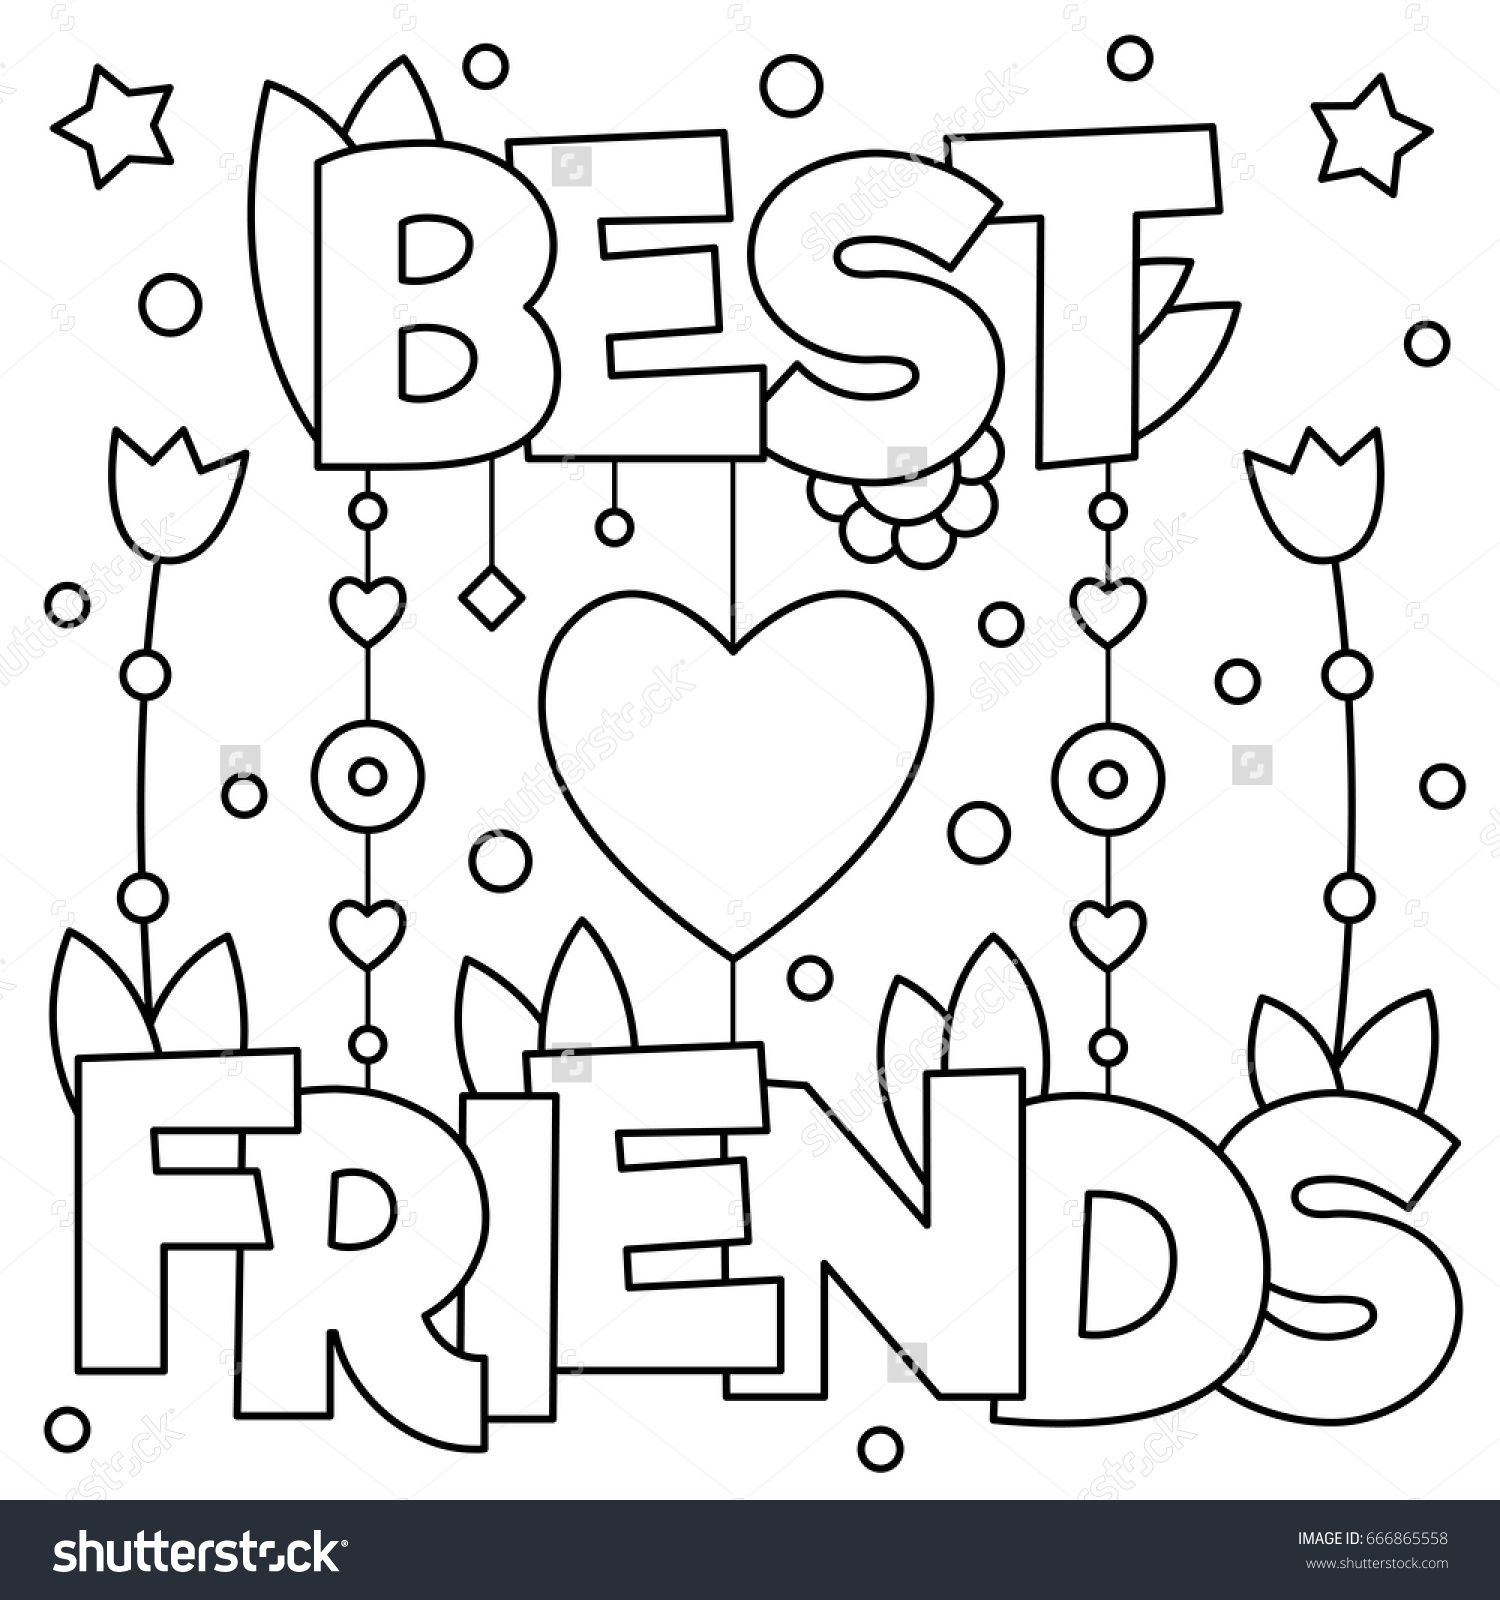 best friends coloring page vector illustration